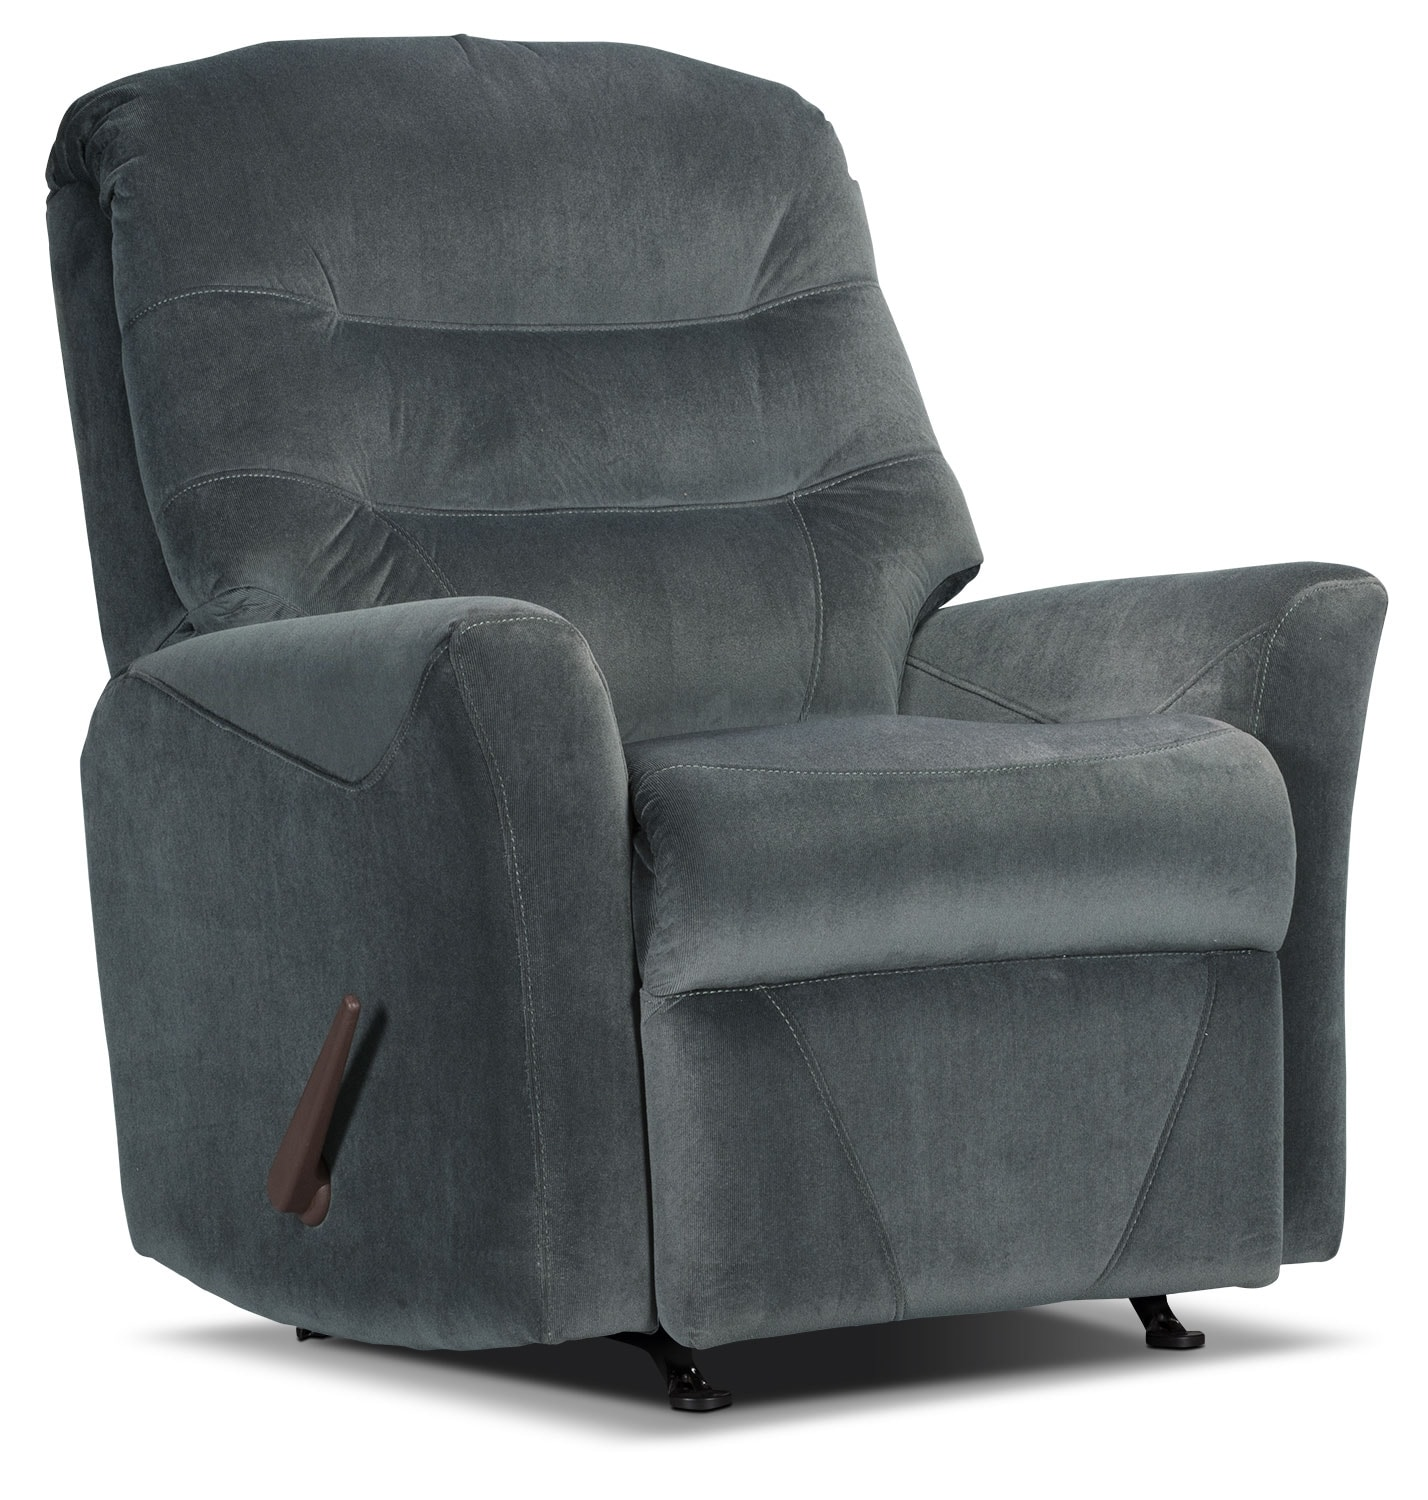 Living Room Furniture - Designed2B Recliner 4560 Microsuede Rocker Recliner - Graphite